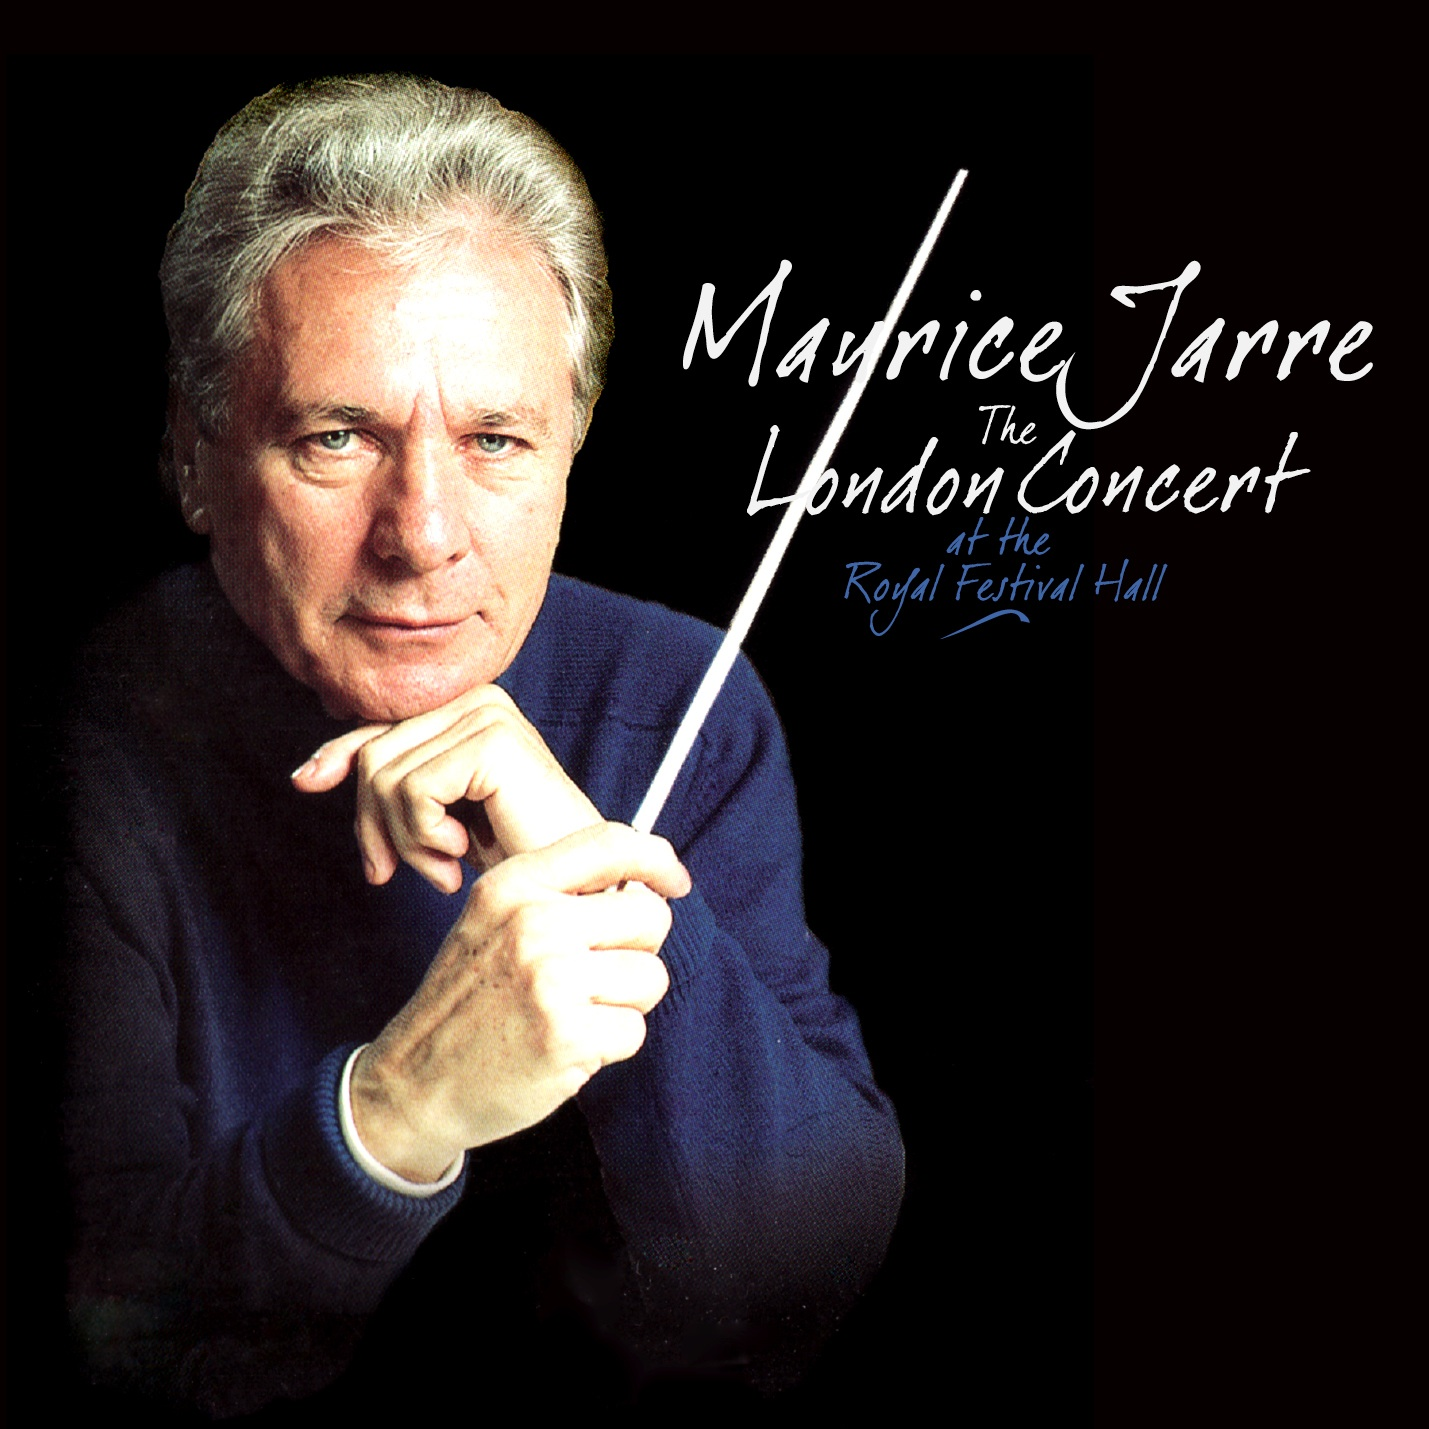 Maurice Jarre - The London Concert